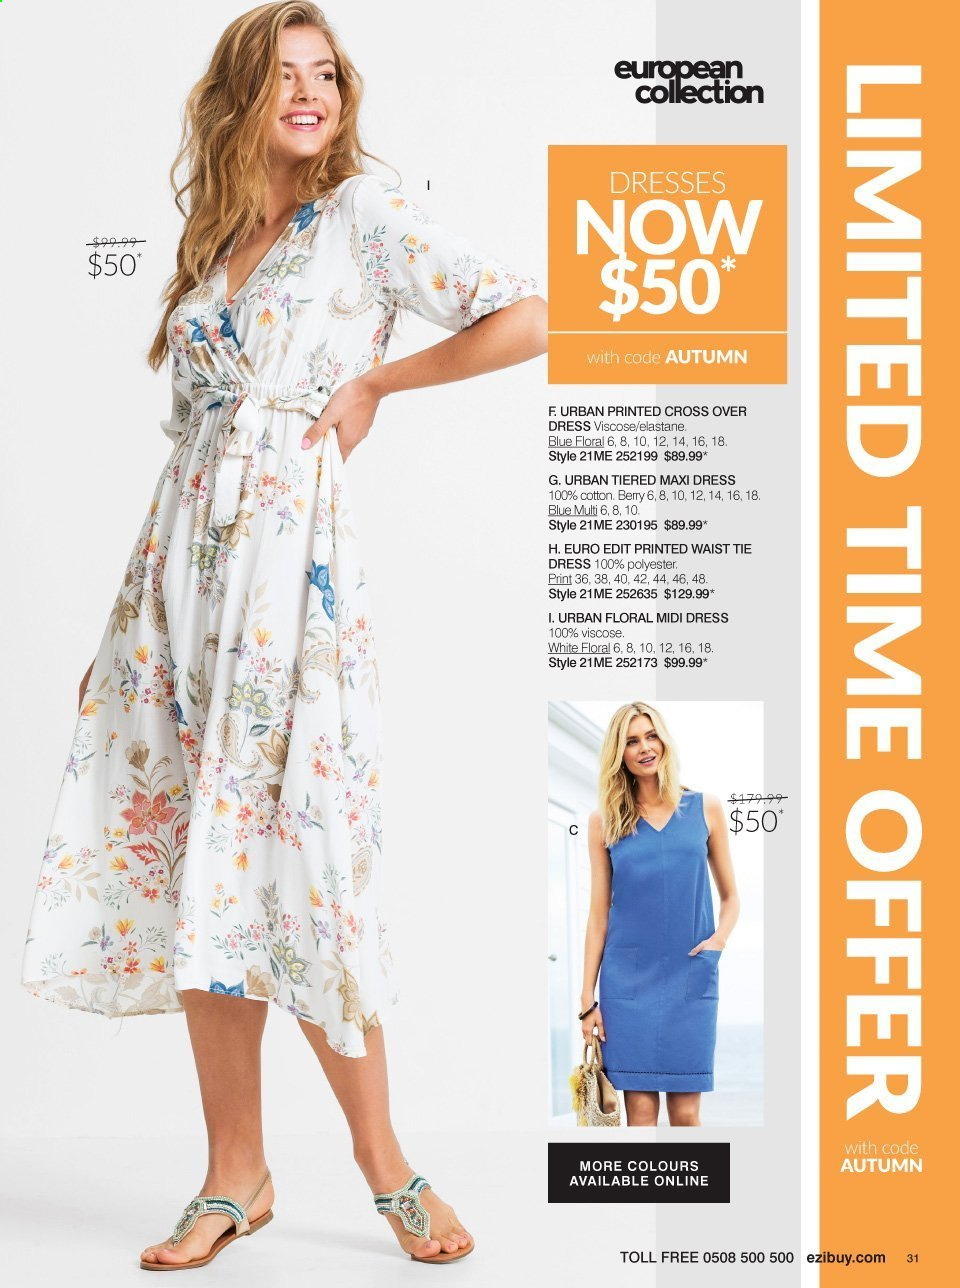 Ezibuy mailer - 09.03.2021 - 19.04.2021 - Sales products - dress, tie. Page 31.